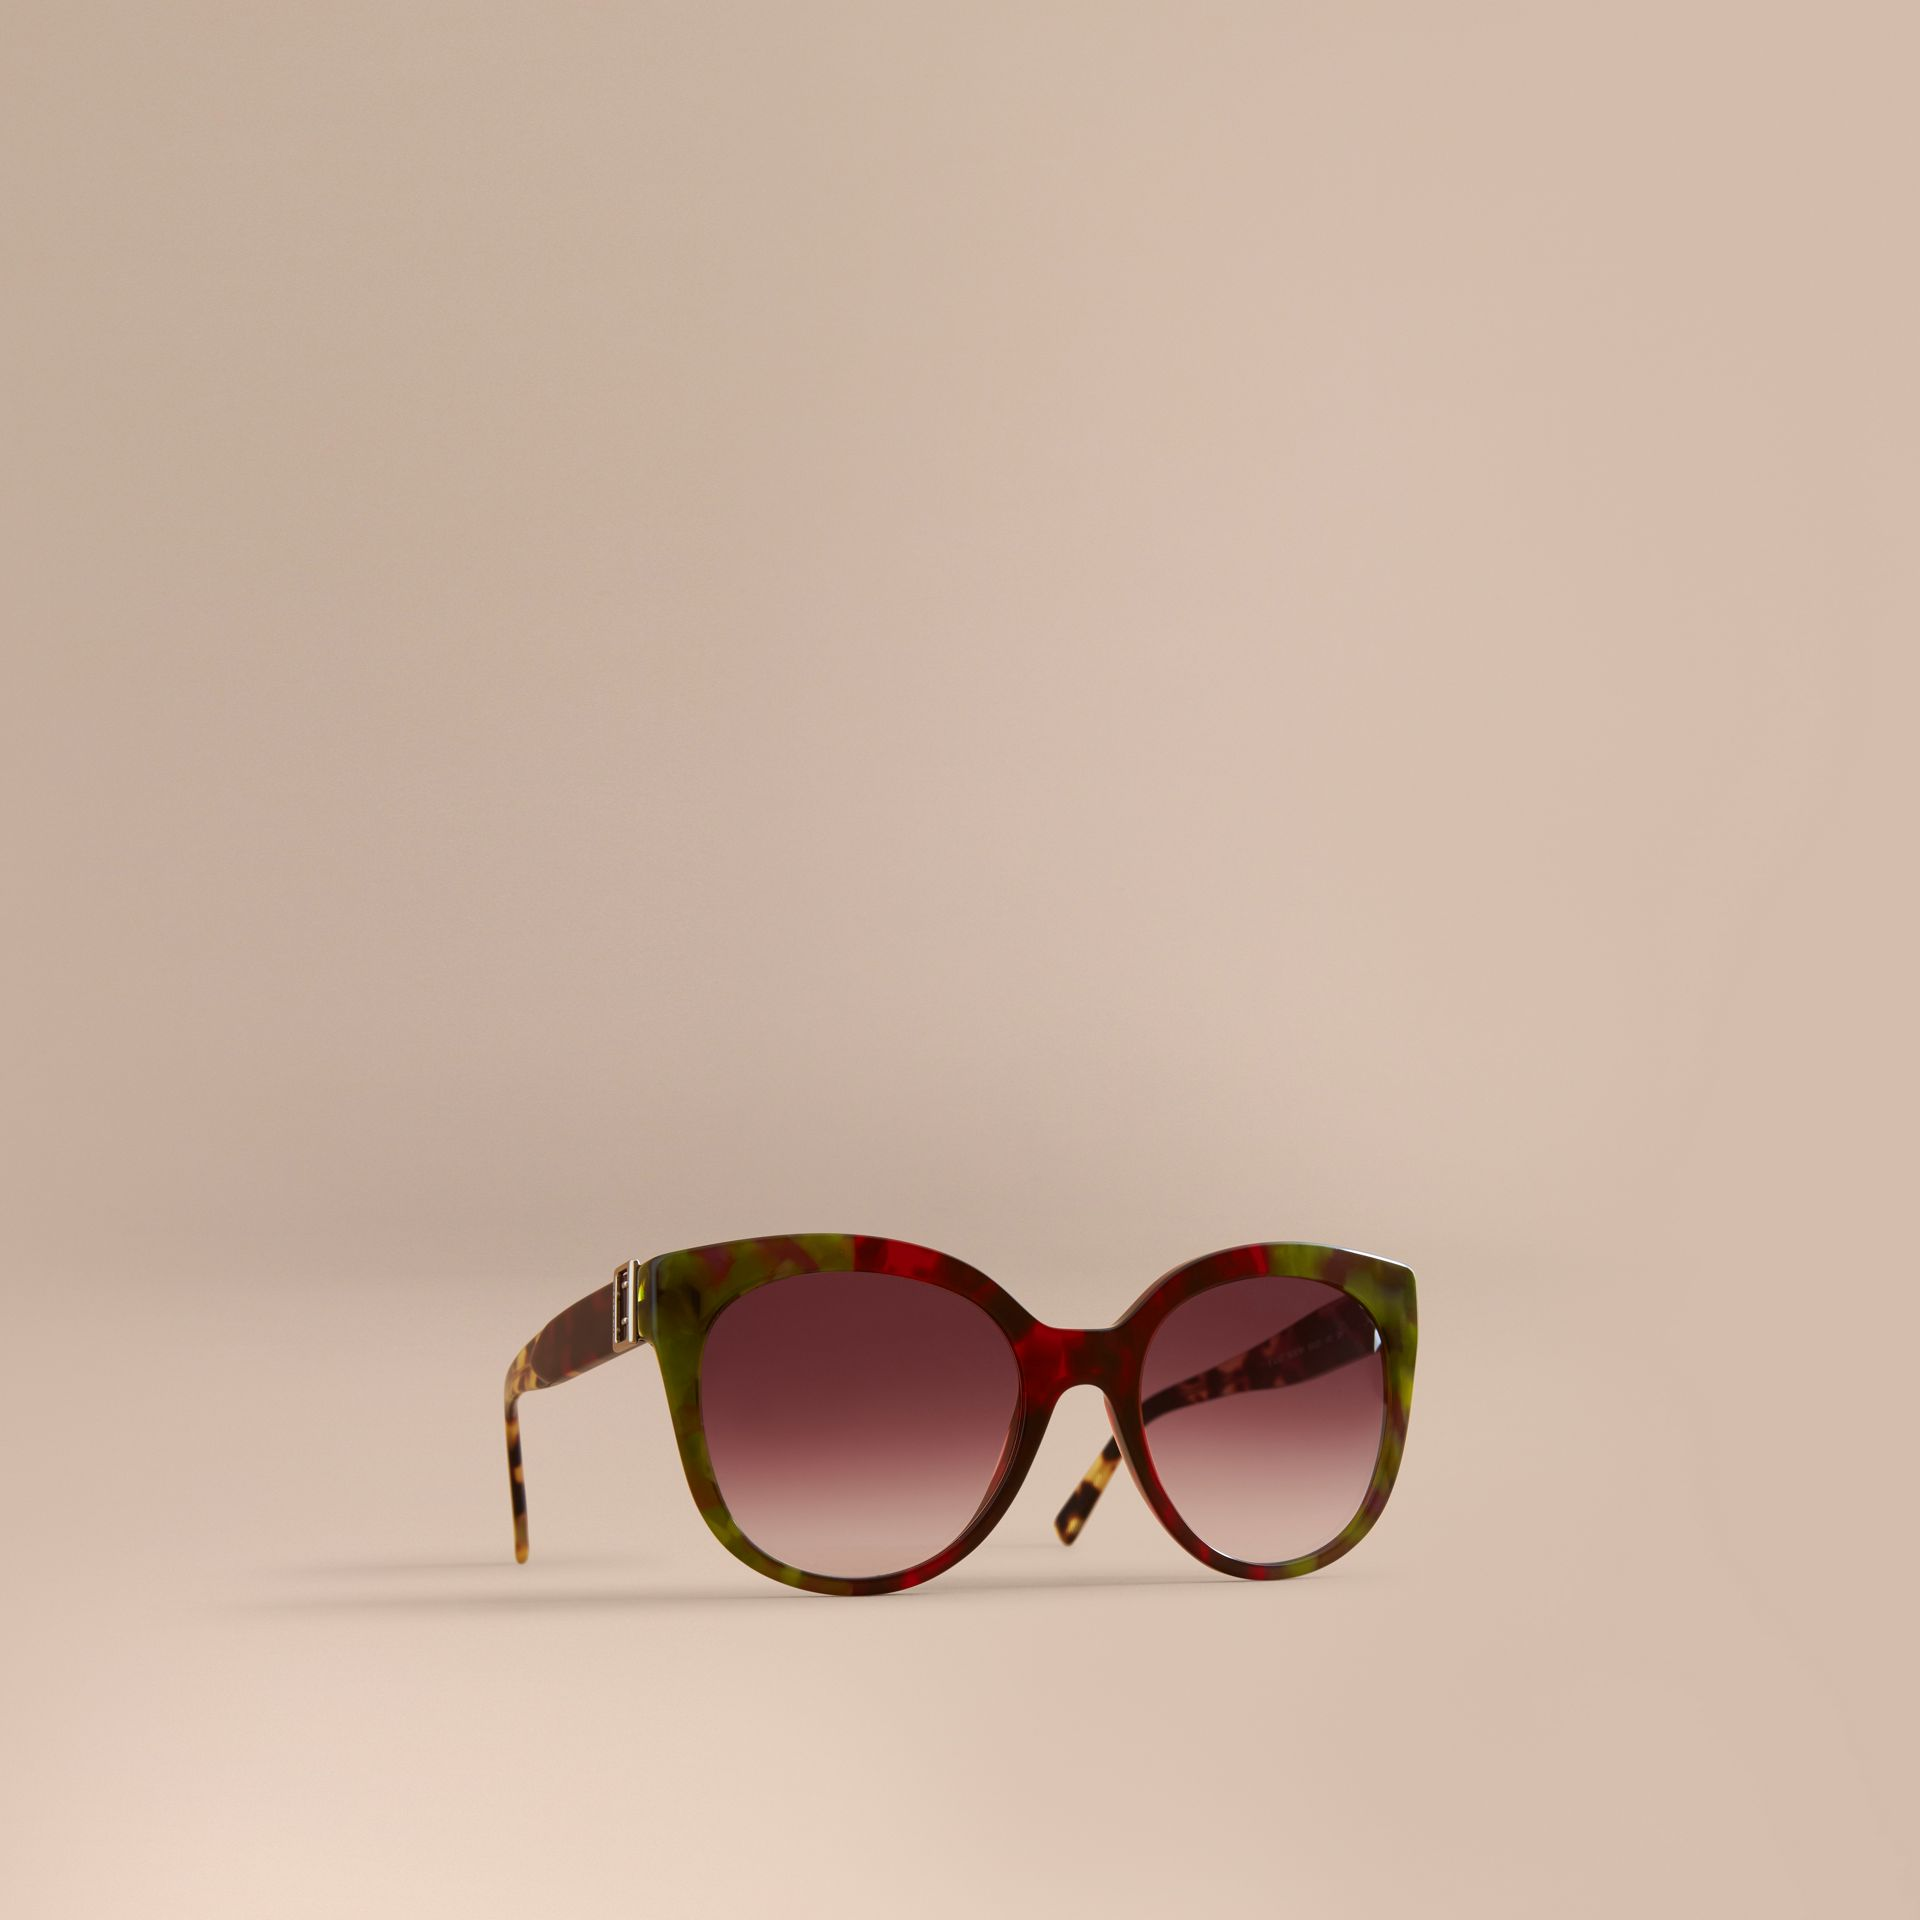 Buckle Detail Cat-eye Frame Sunglasses in Cardinal Red - Women | Burberry - gallery image 1